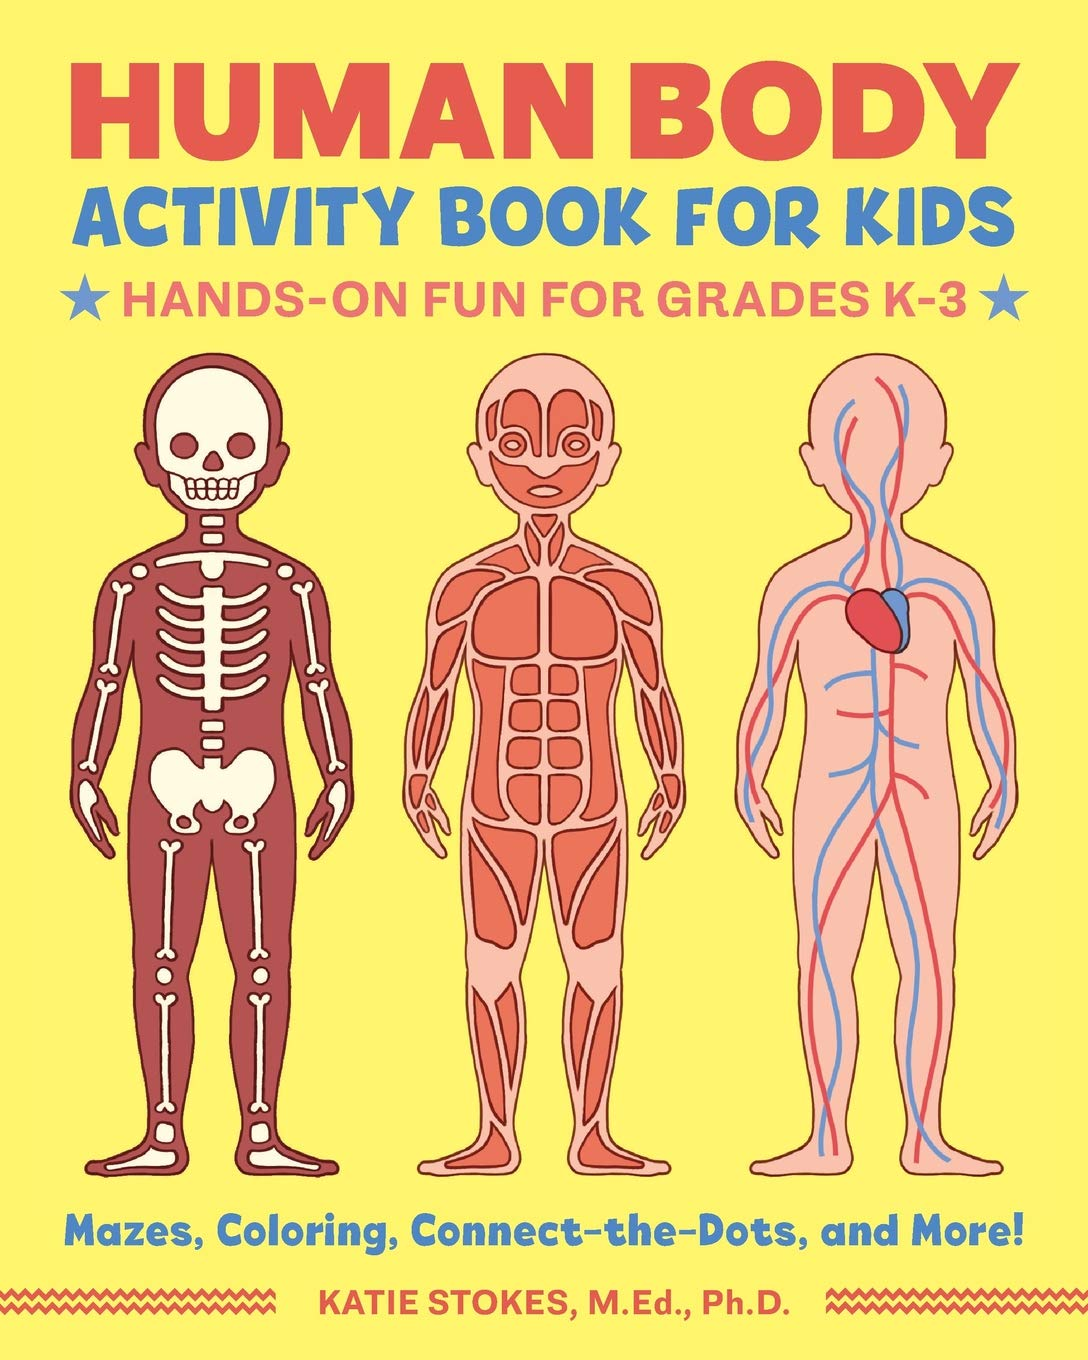 Human Body Activity Book For Kids Only 4 59